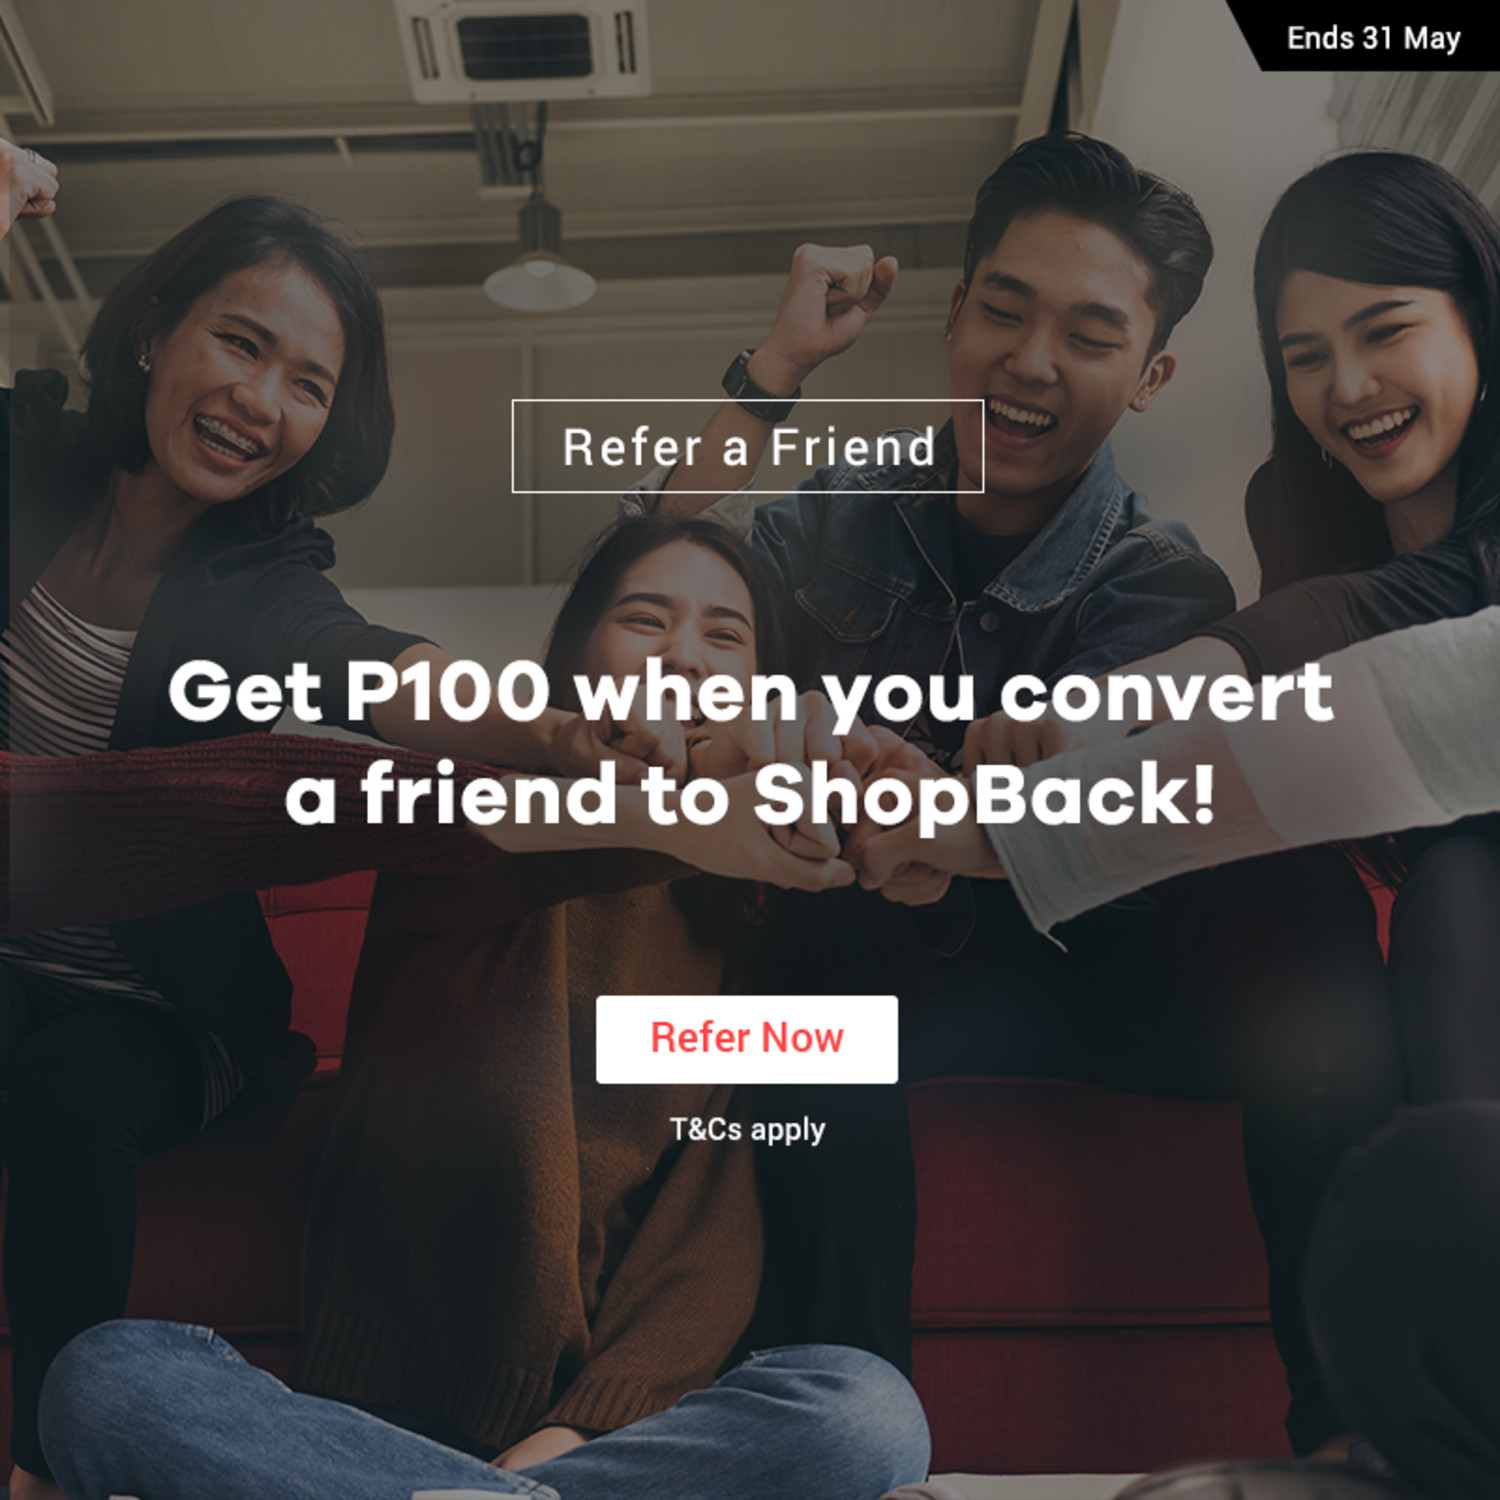 Get P100 Cashback bonus whenever you refer a friend to ShopBack